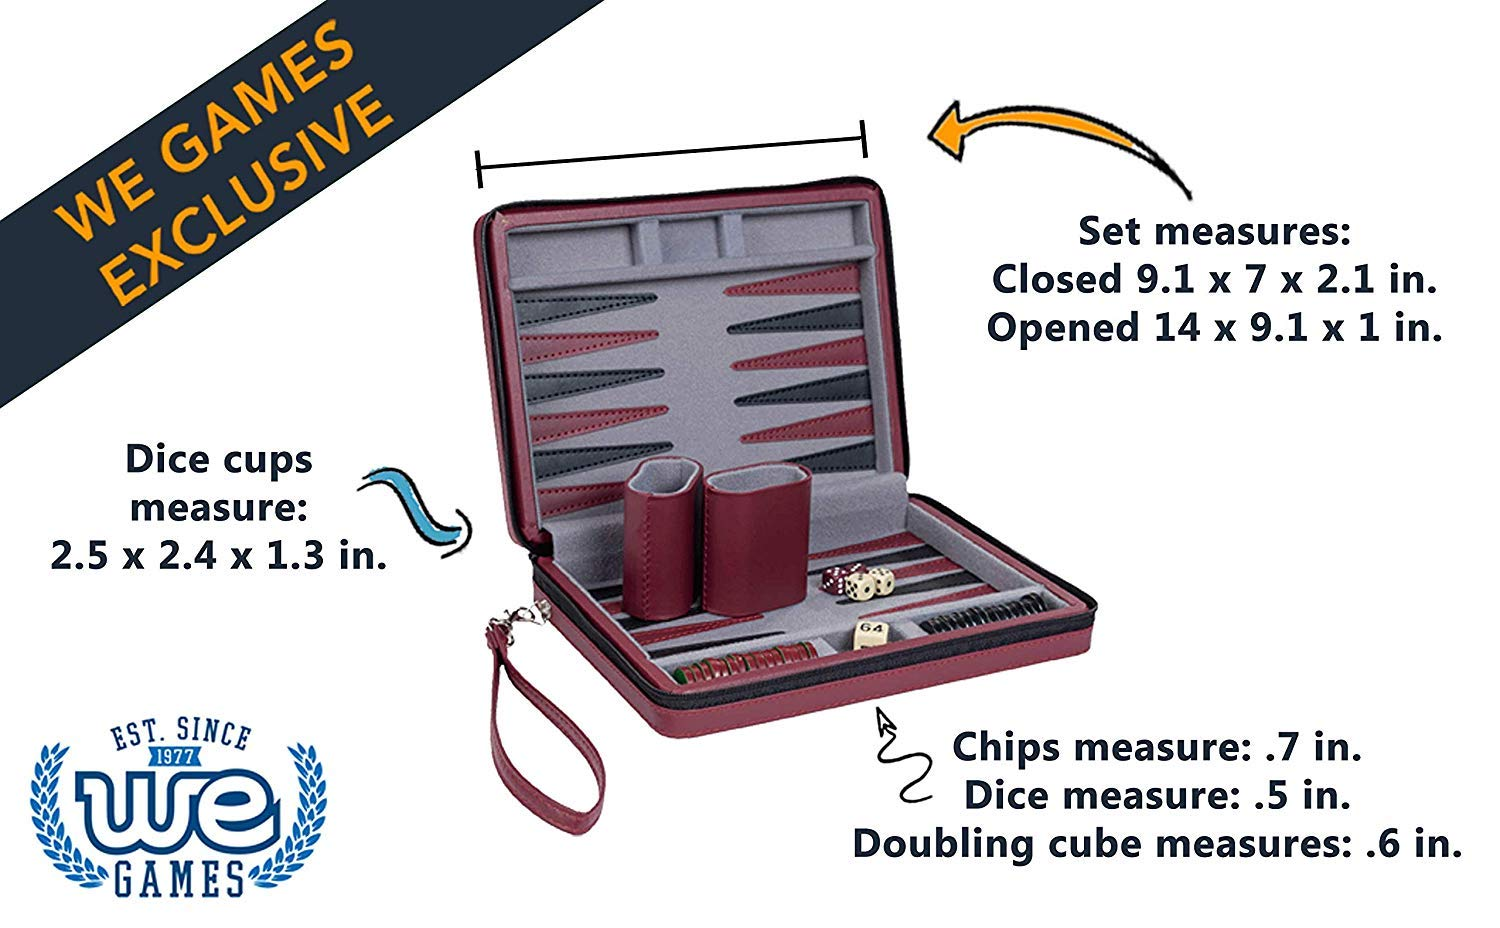 Wood Expressions WE Games Burgundy Magnetic Backgammon Set with Carrying Strap - Travel Size by WE Games (Image #2)